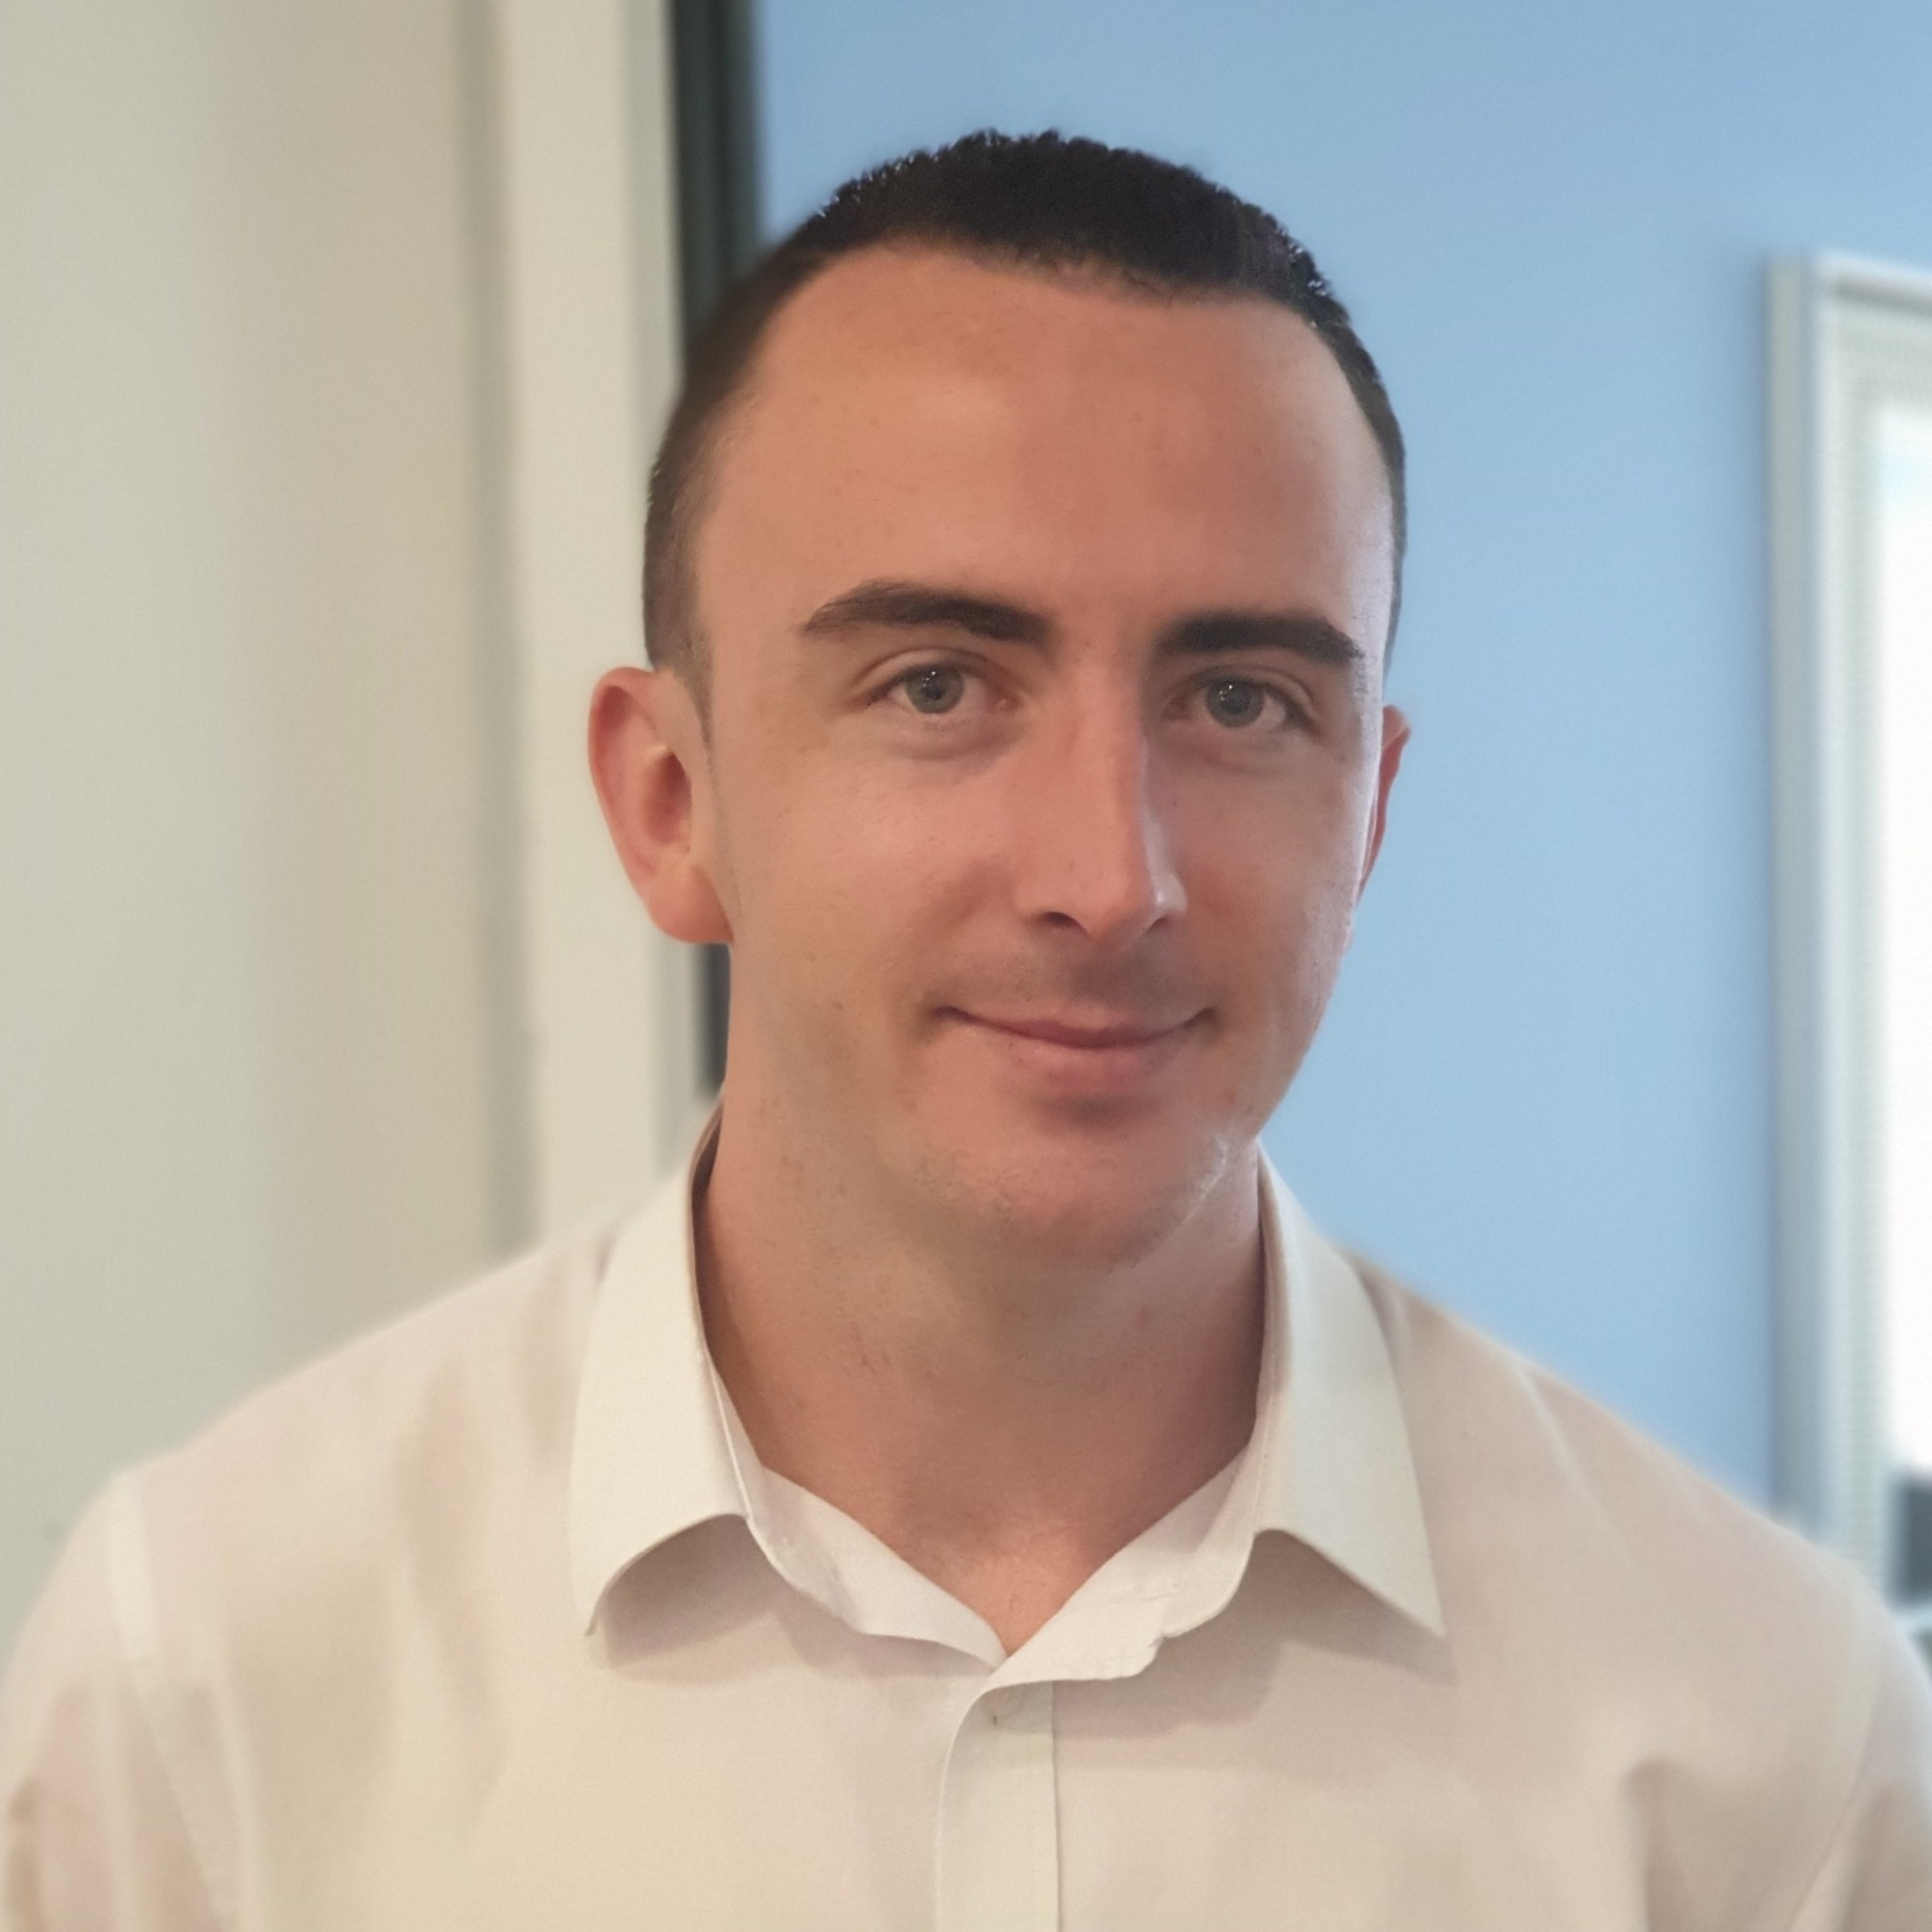 James Curry - Accountantjames@alpha-accountants.com